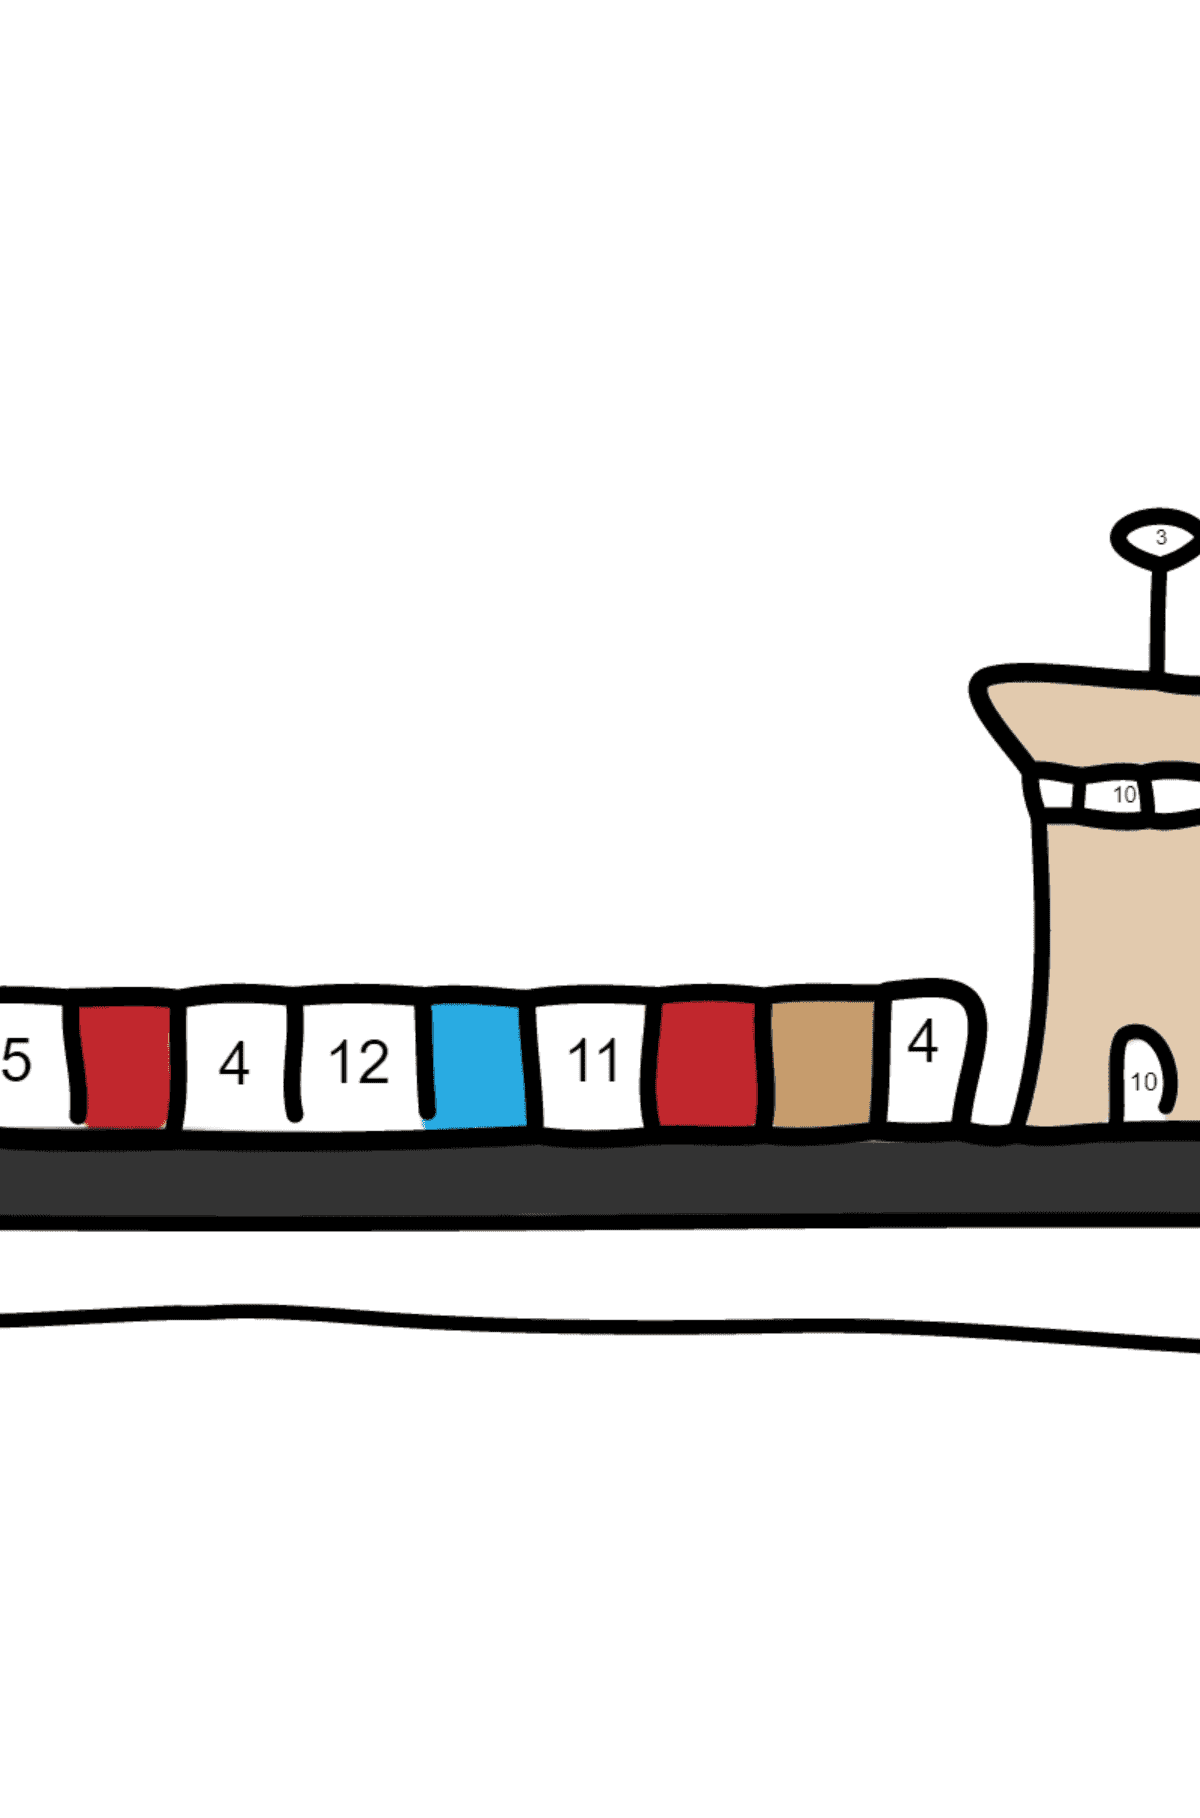 Coloring Page - A Dry Cargo Barge - Coloring by Numbers for Kids